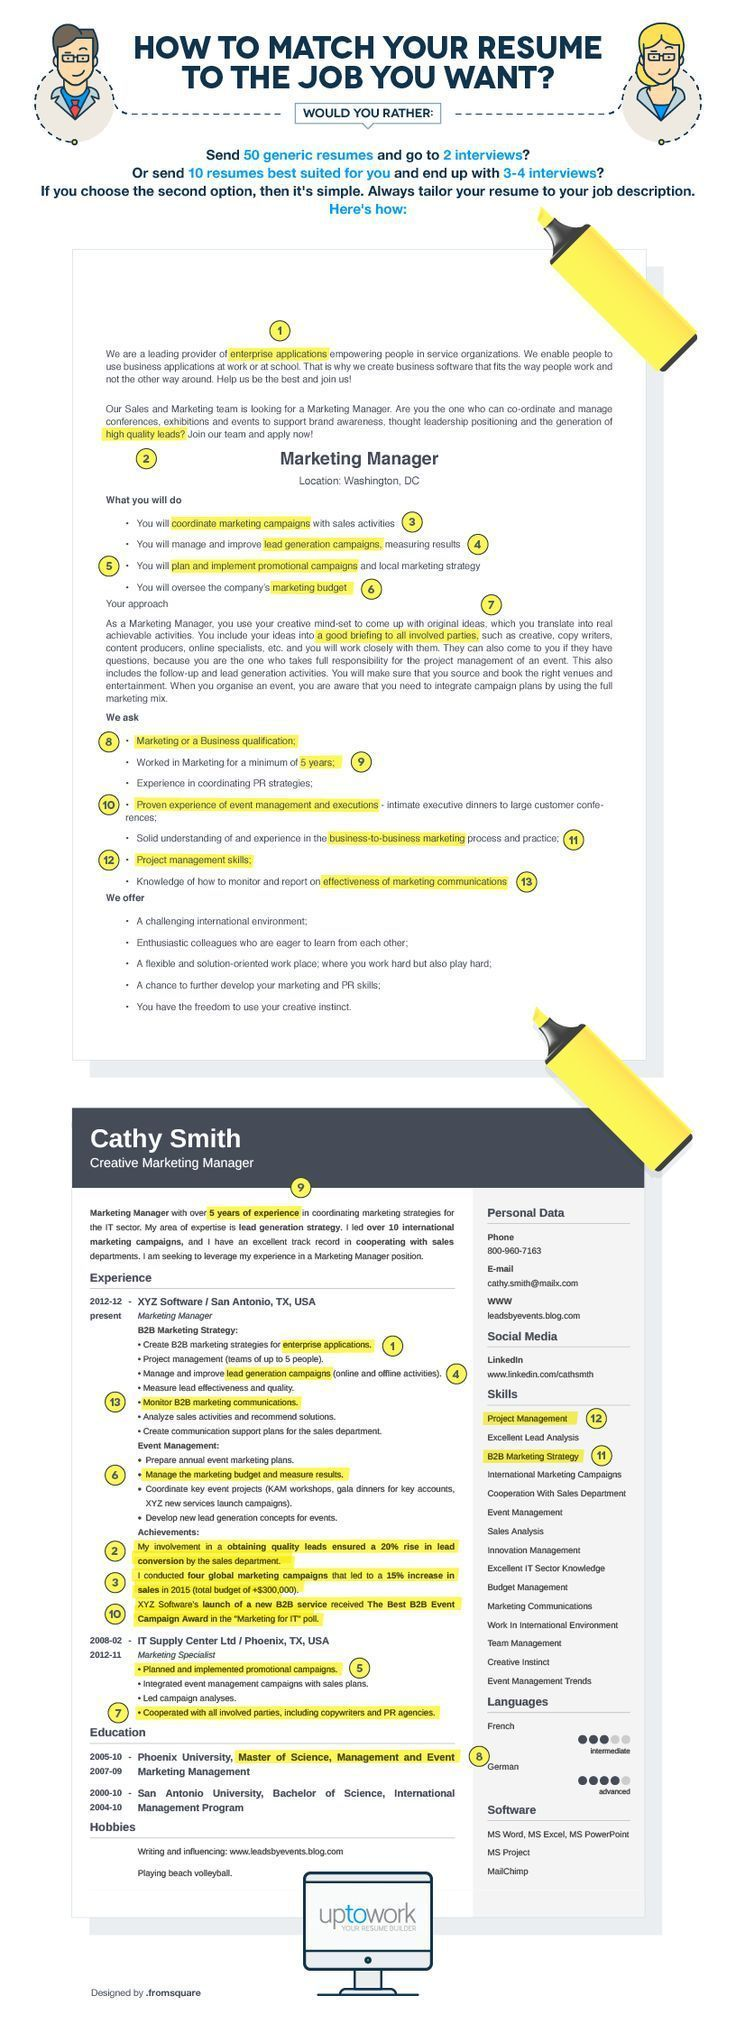 How To Match Your Resume Yo The Job You Want? // Aumenta Tus Posibilidades